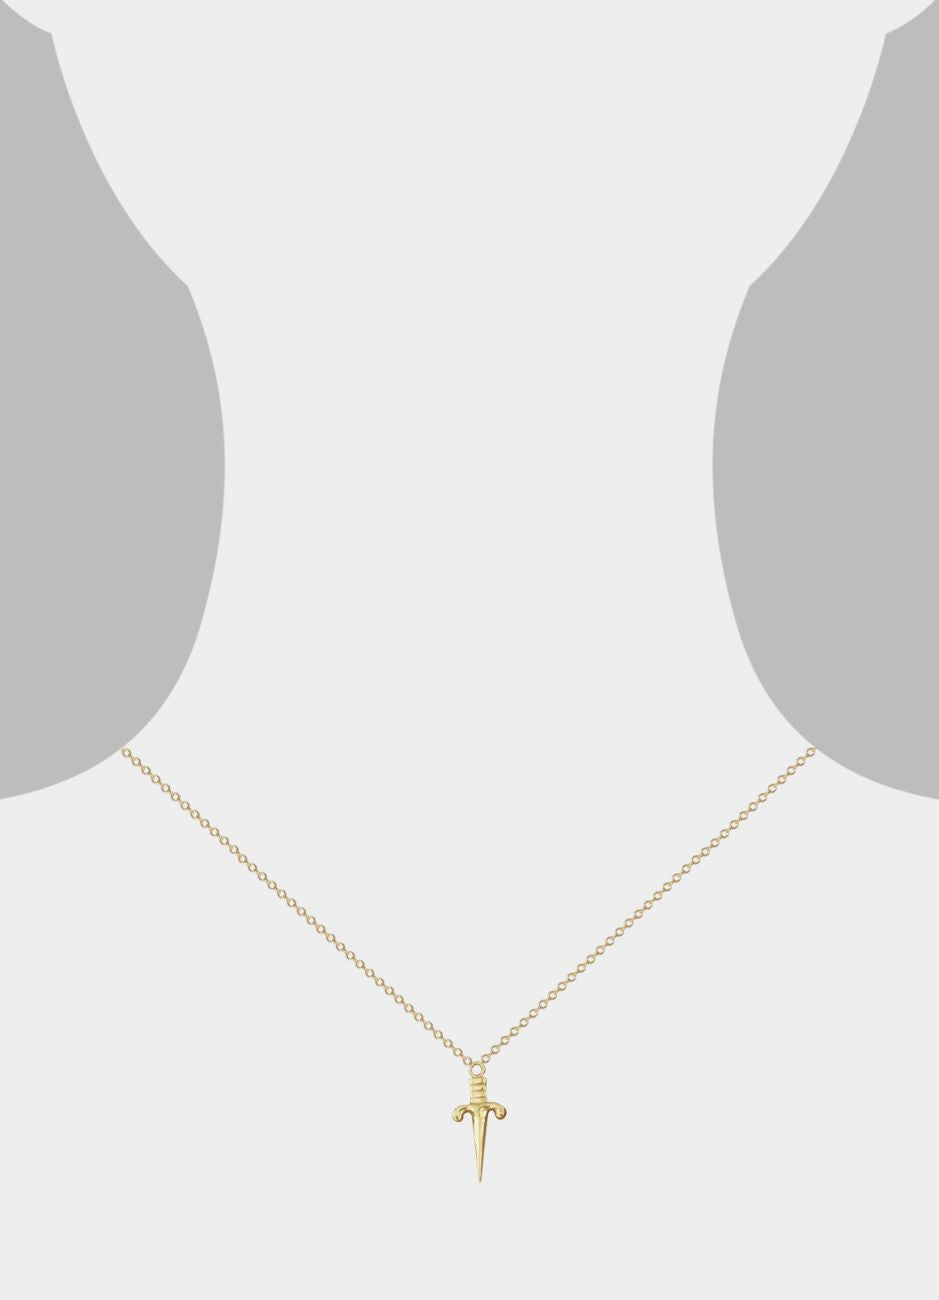 DAGGER NECKLACE | 14K Yellow Gold - Eddera